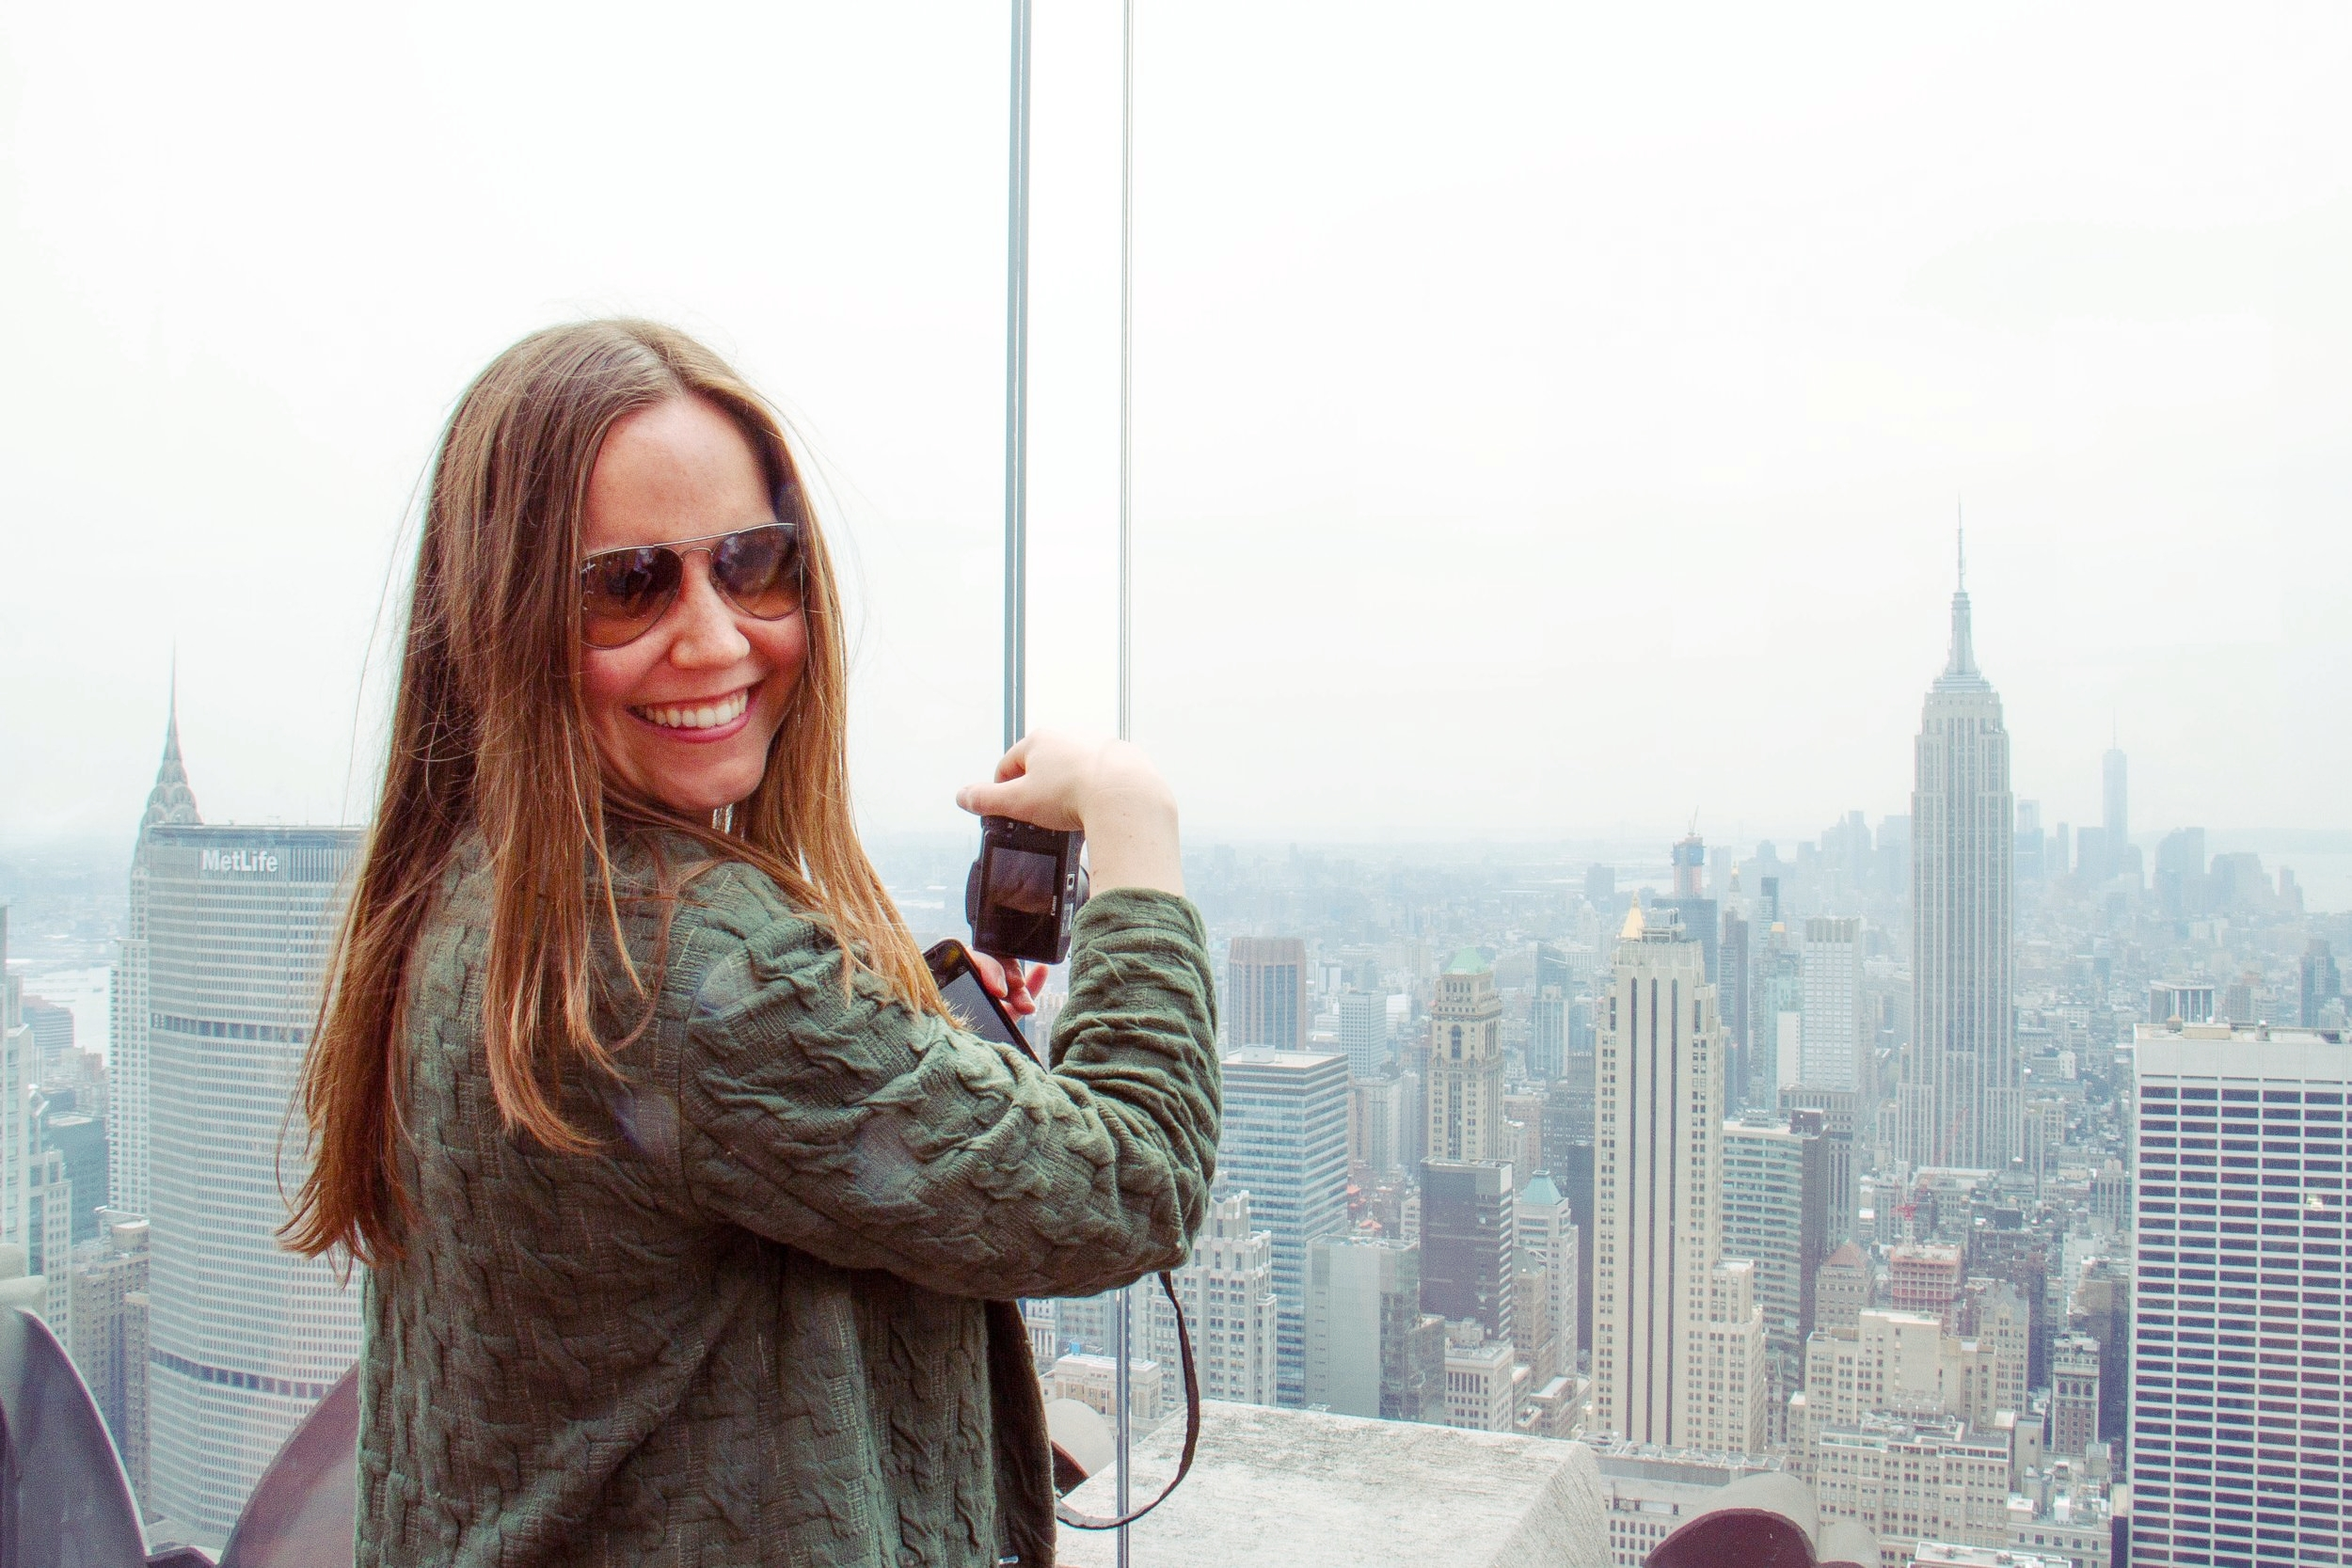 Lindsay Shapka The Anthrotorian Travel Blog